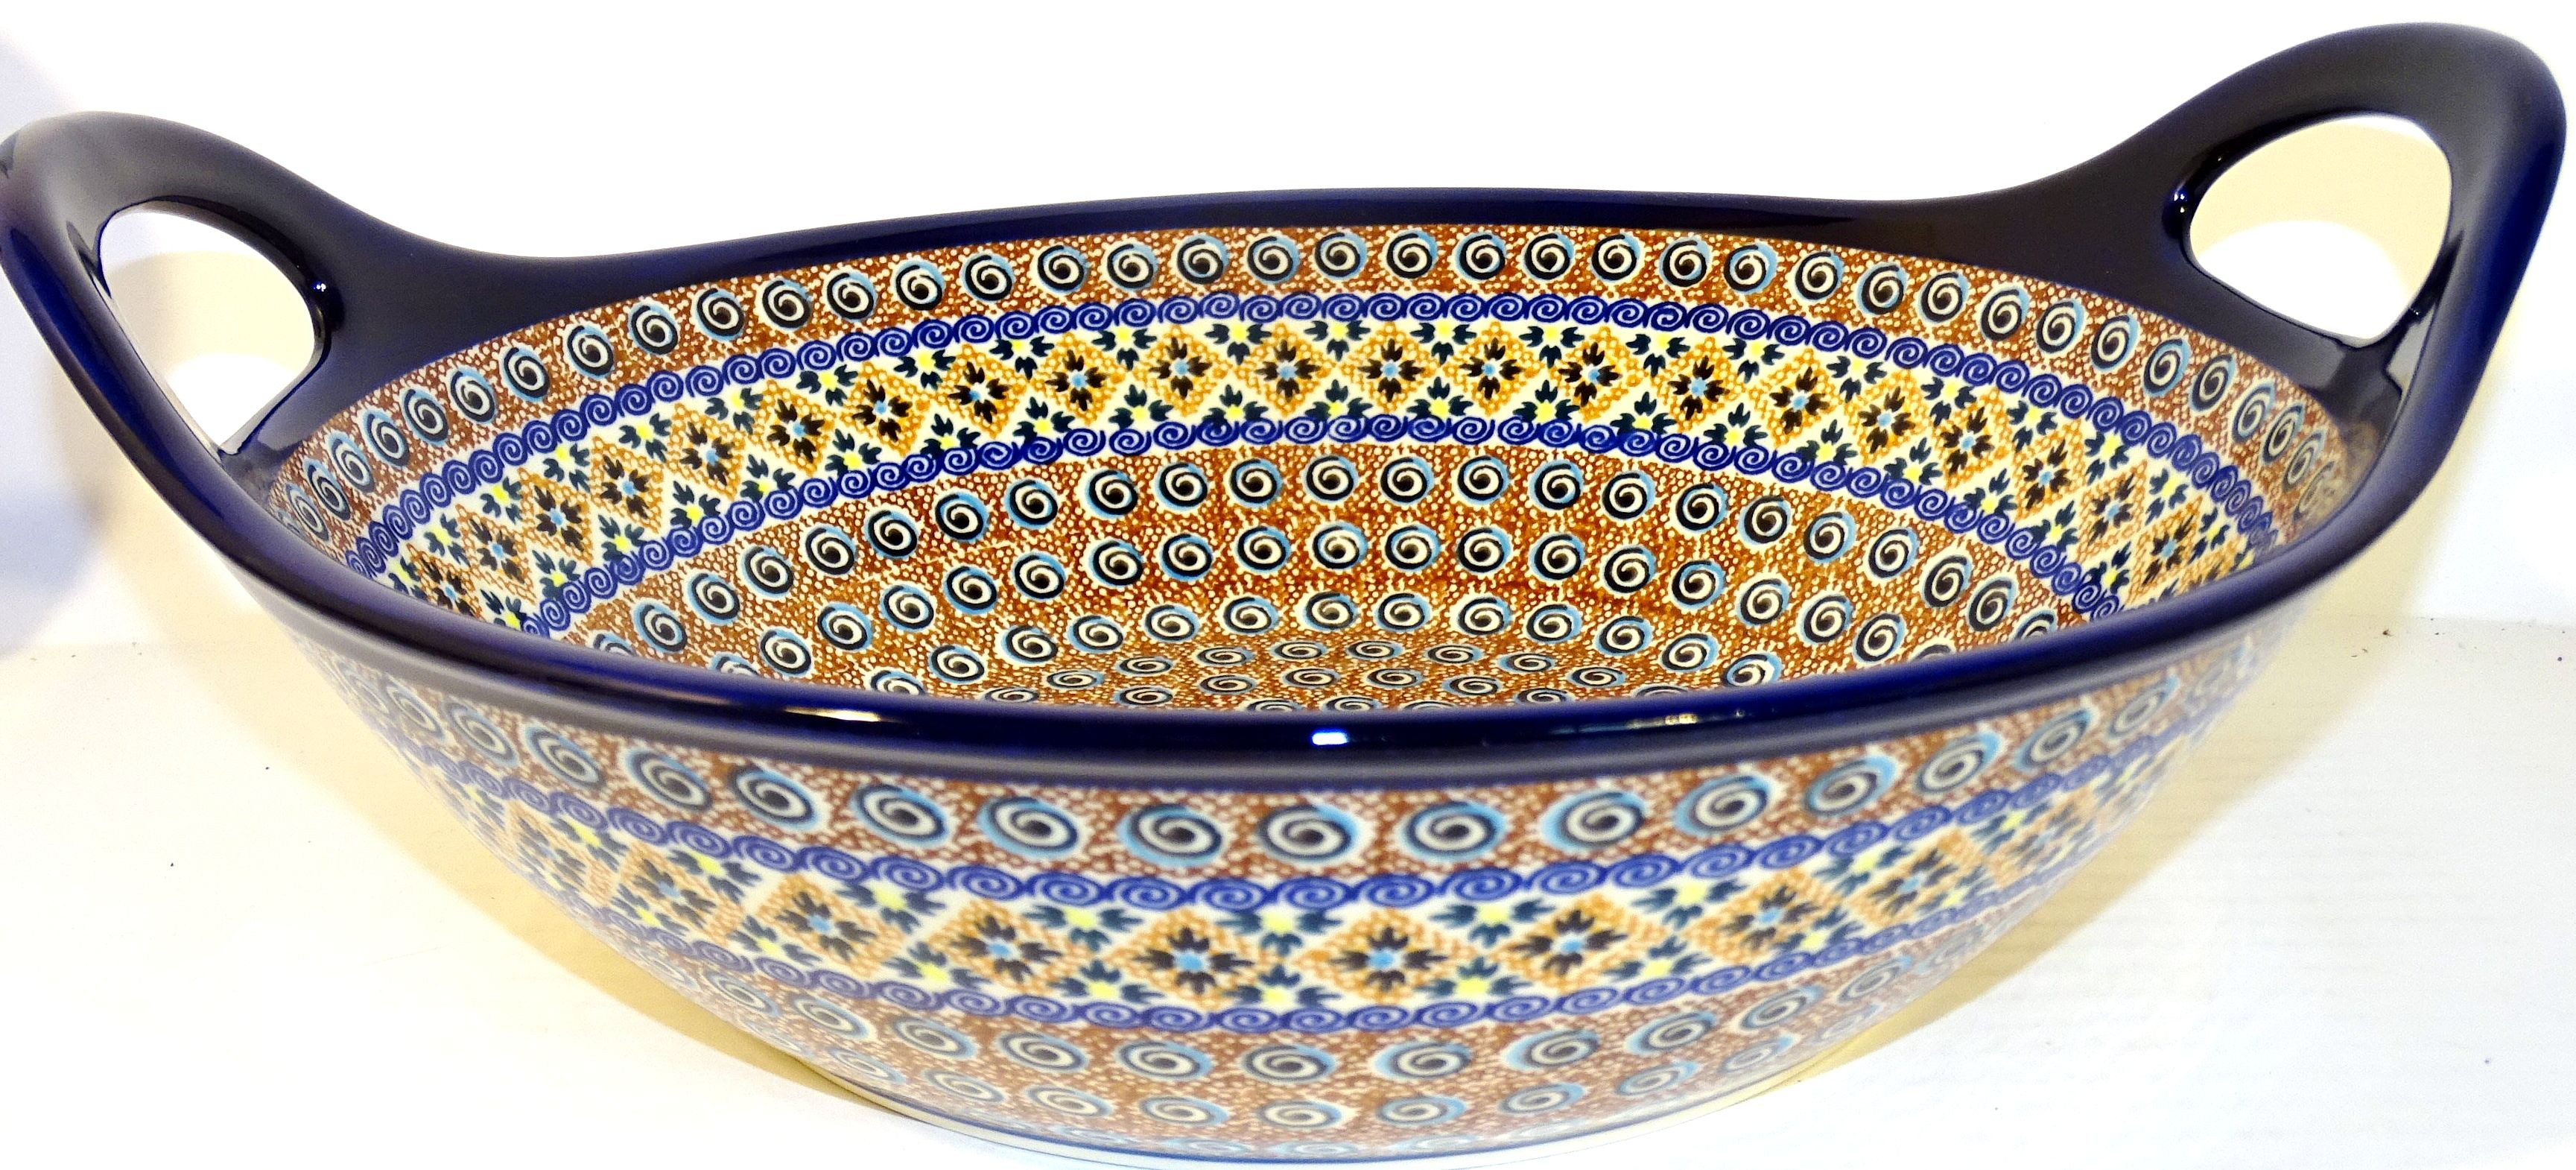 "Pottery Avenue 13"" INDIA Stoneware Bowls With Handles 